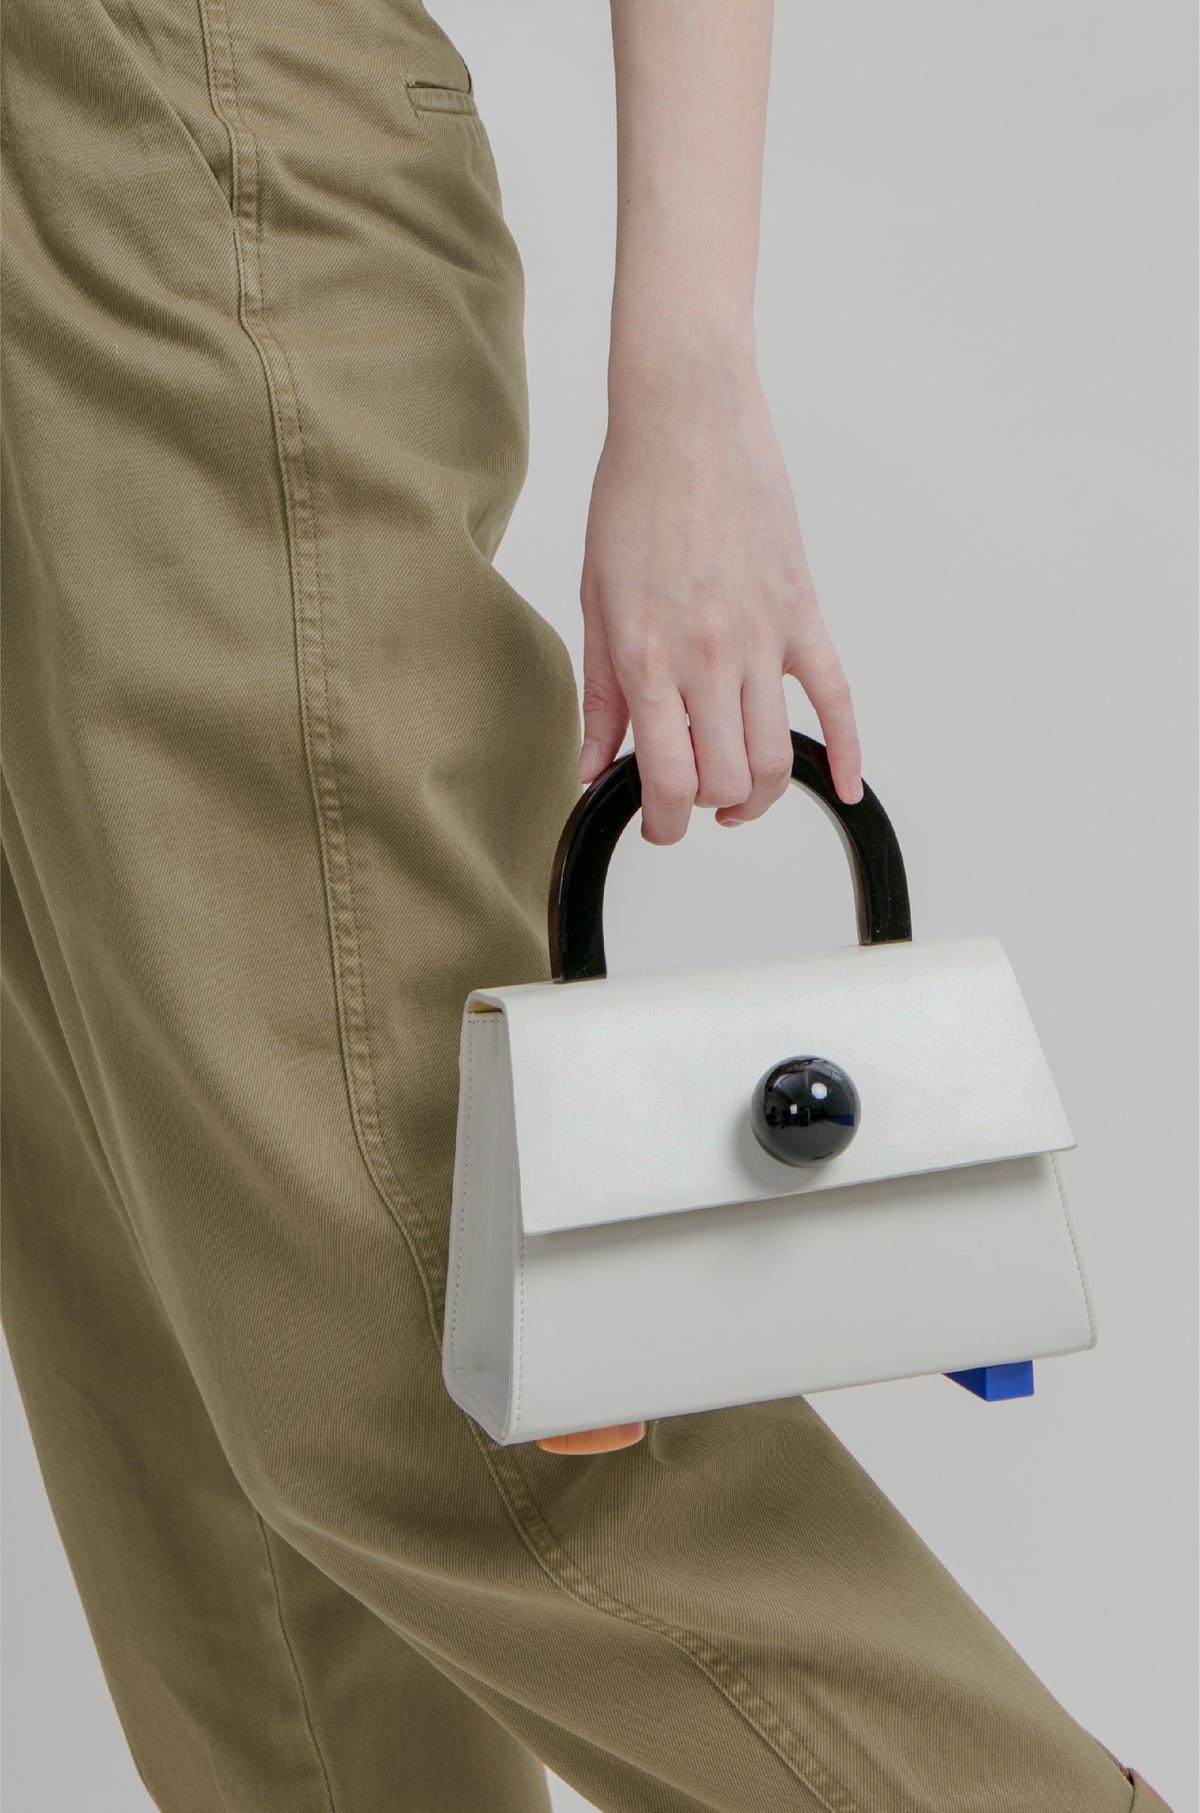 Image of Diva satchel bag • Beige with strap - Limited quantities